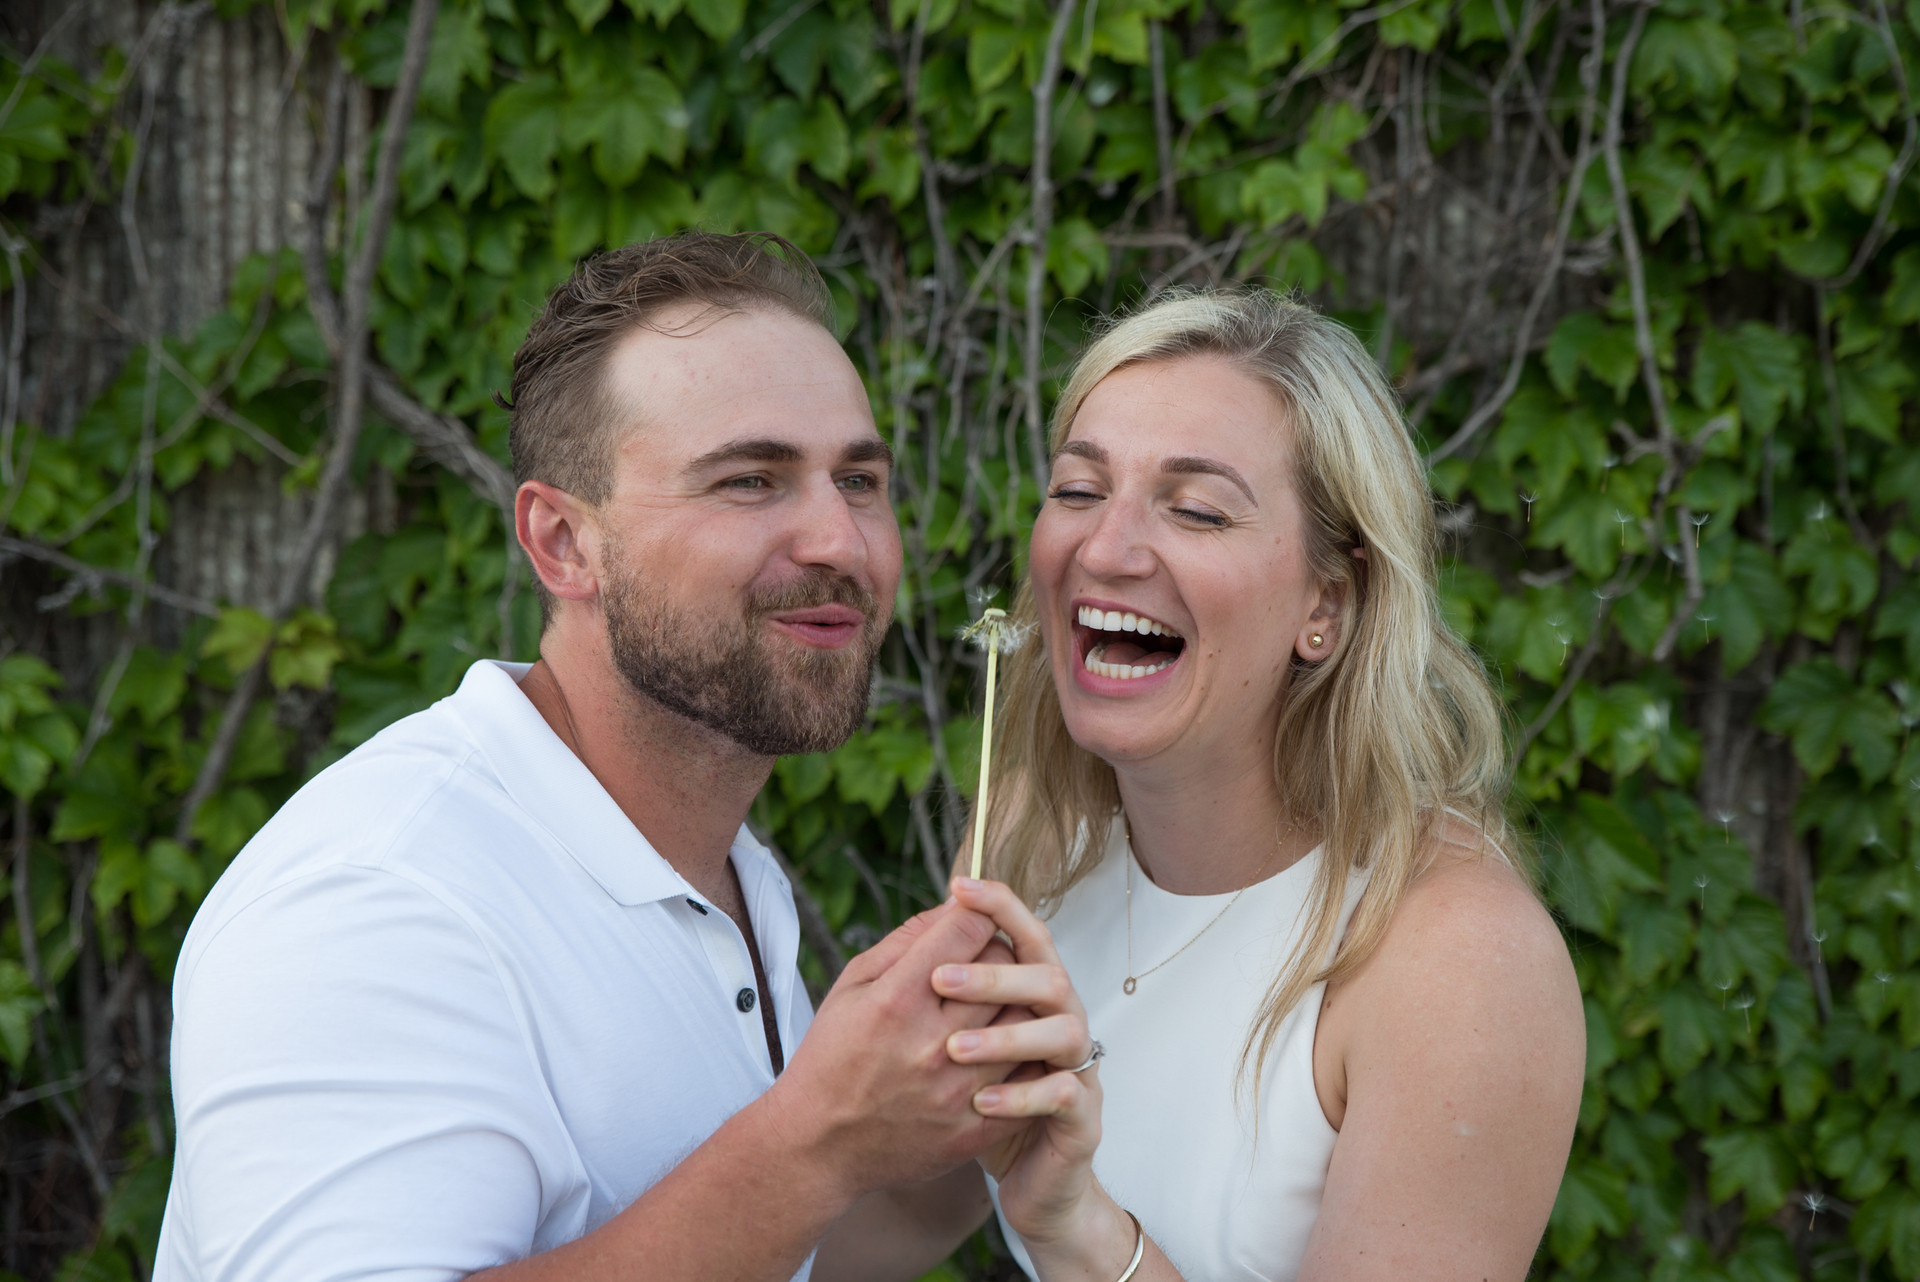 Jessica M. Photography Engagement Photographer Northbrook IL